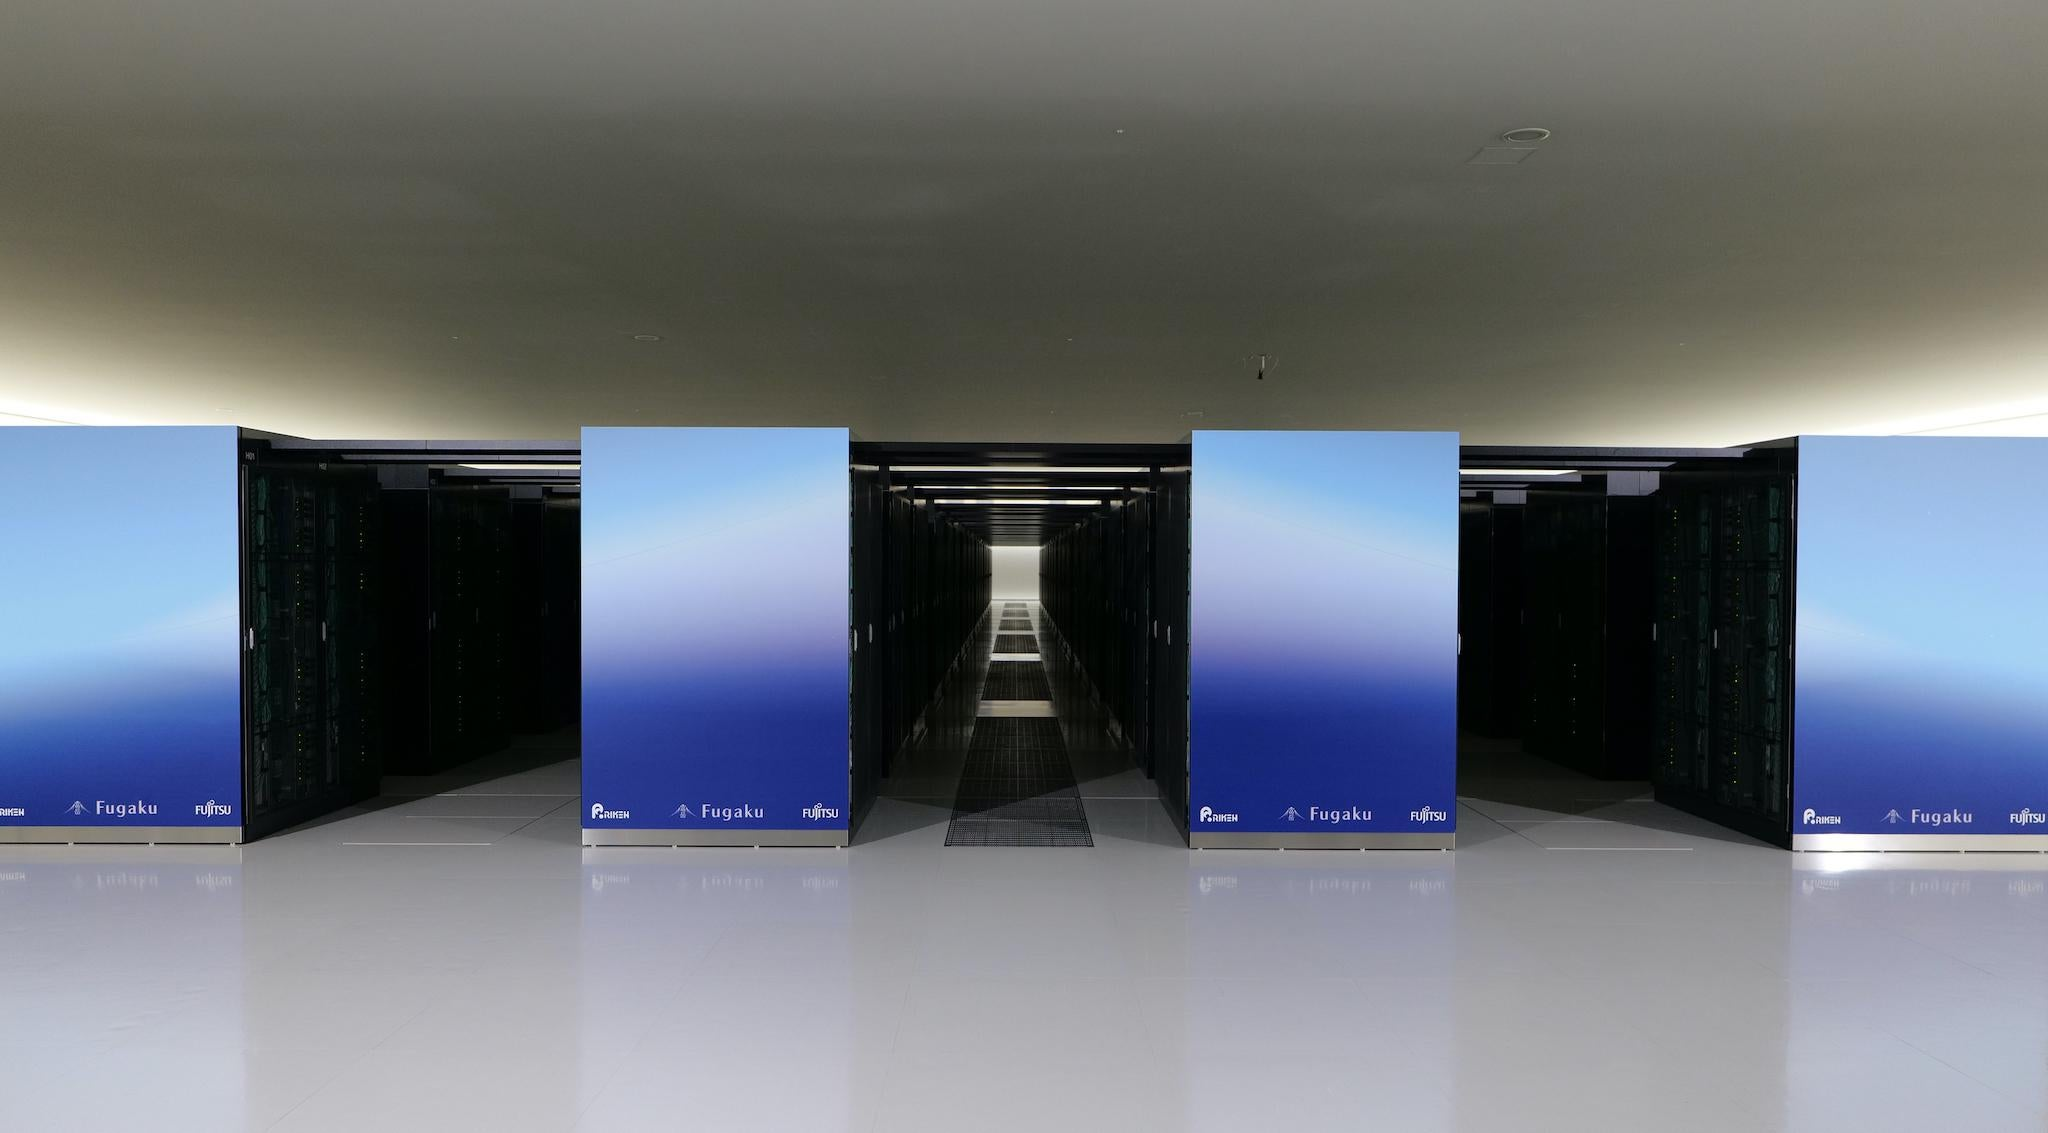 Scientists create the fastest computer ever made, as 'Fugaku' supercomputer hits top of ranking thumbnail